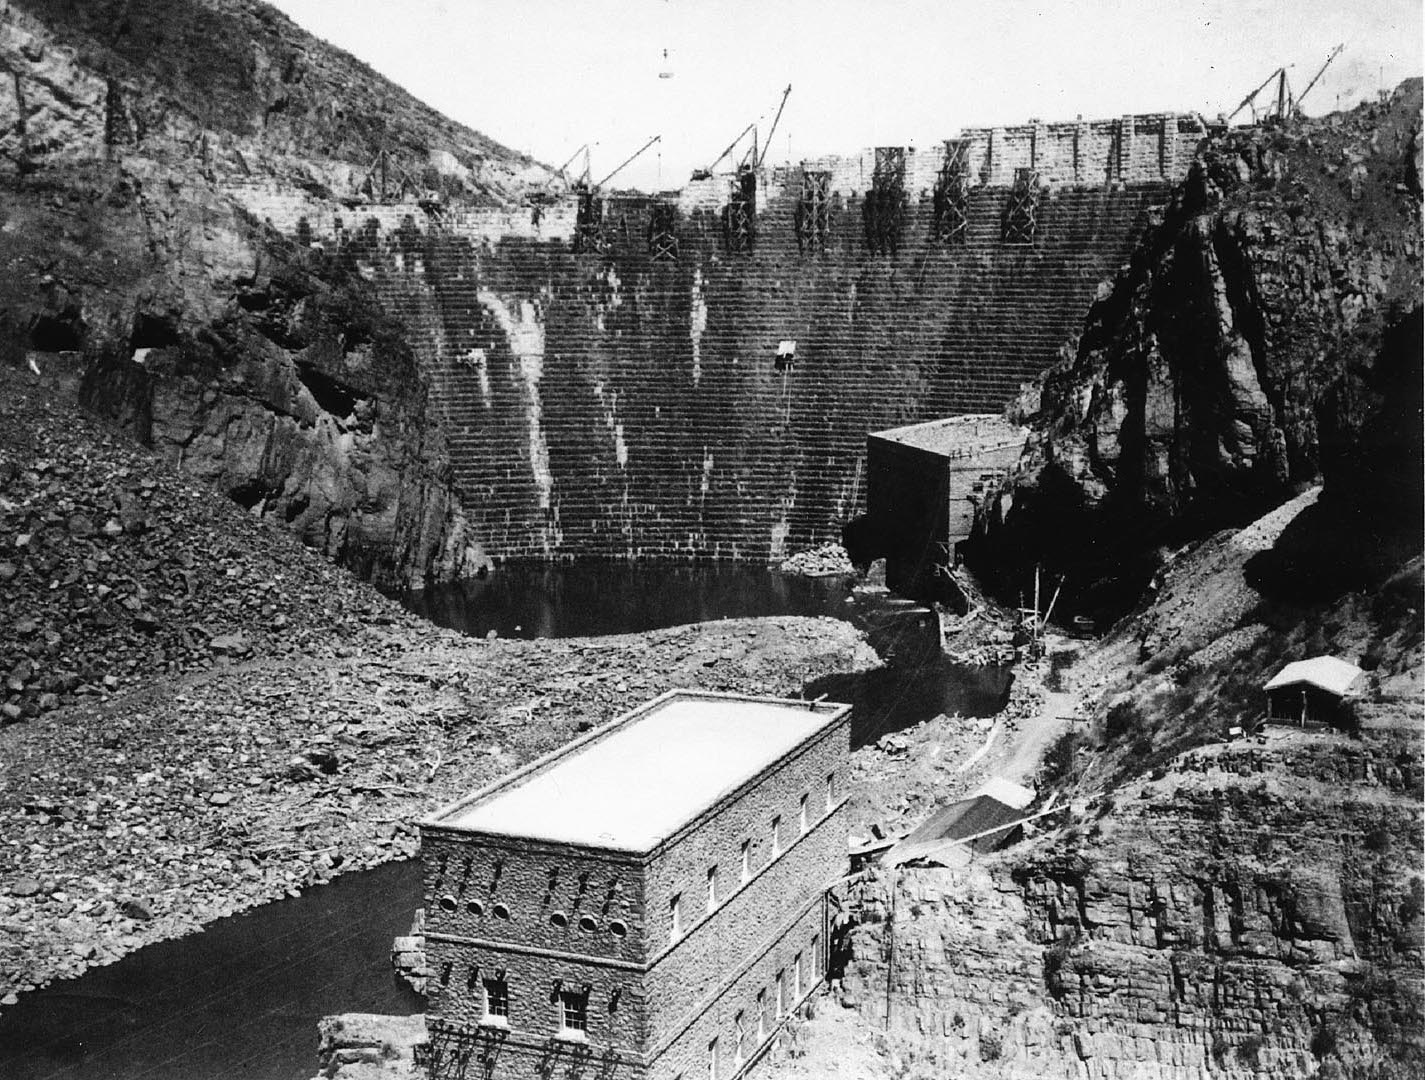 Roosevelt Dam and Powerhouse under construction in 1909